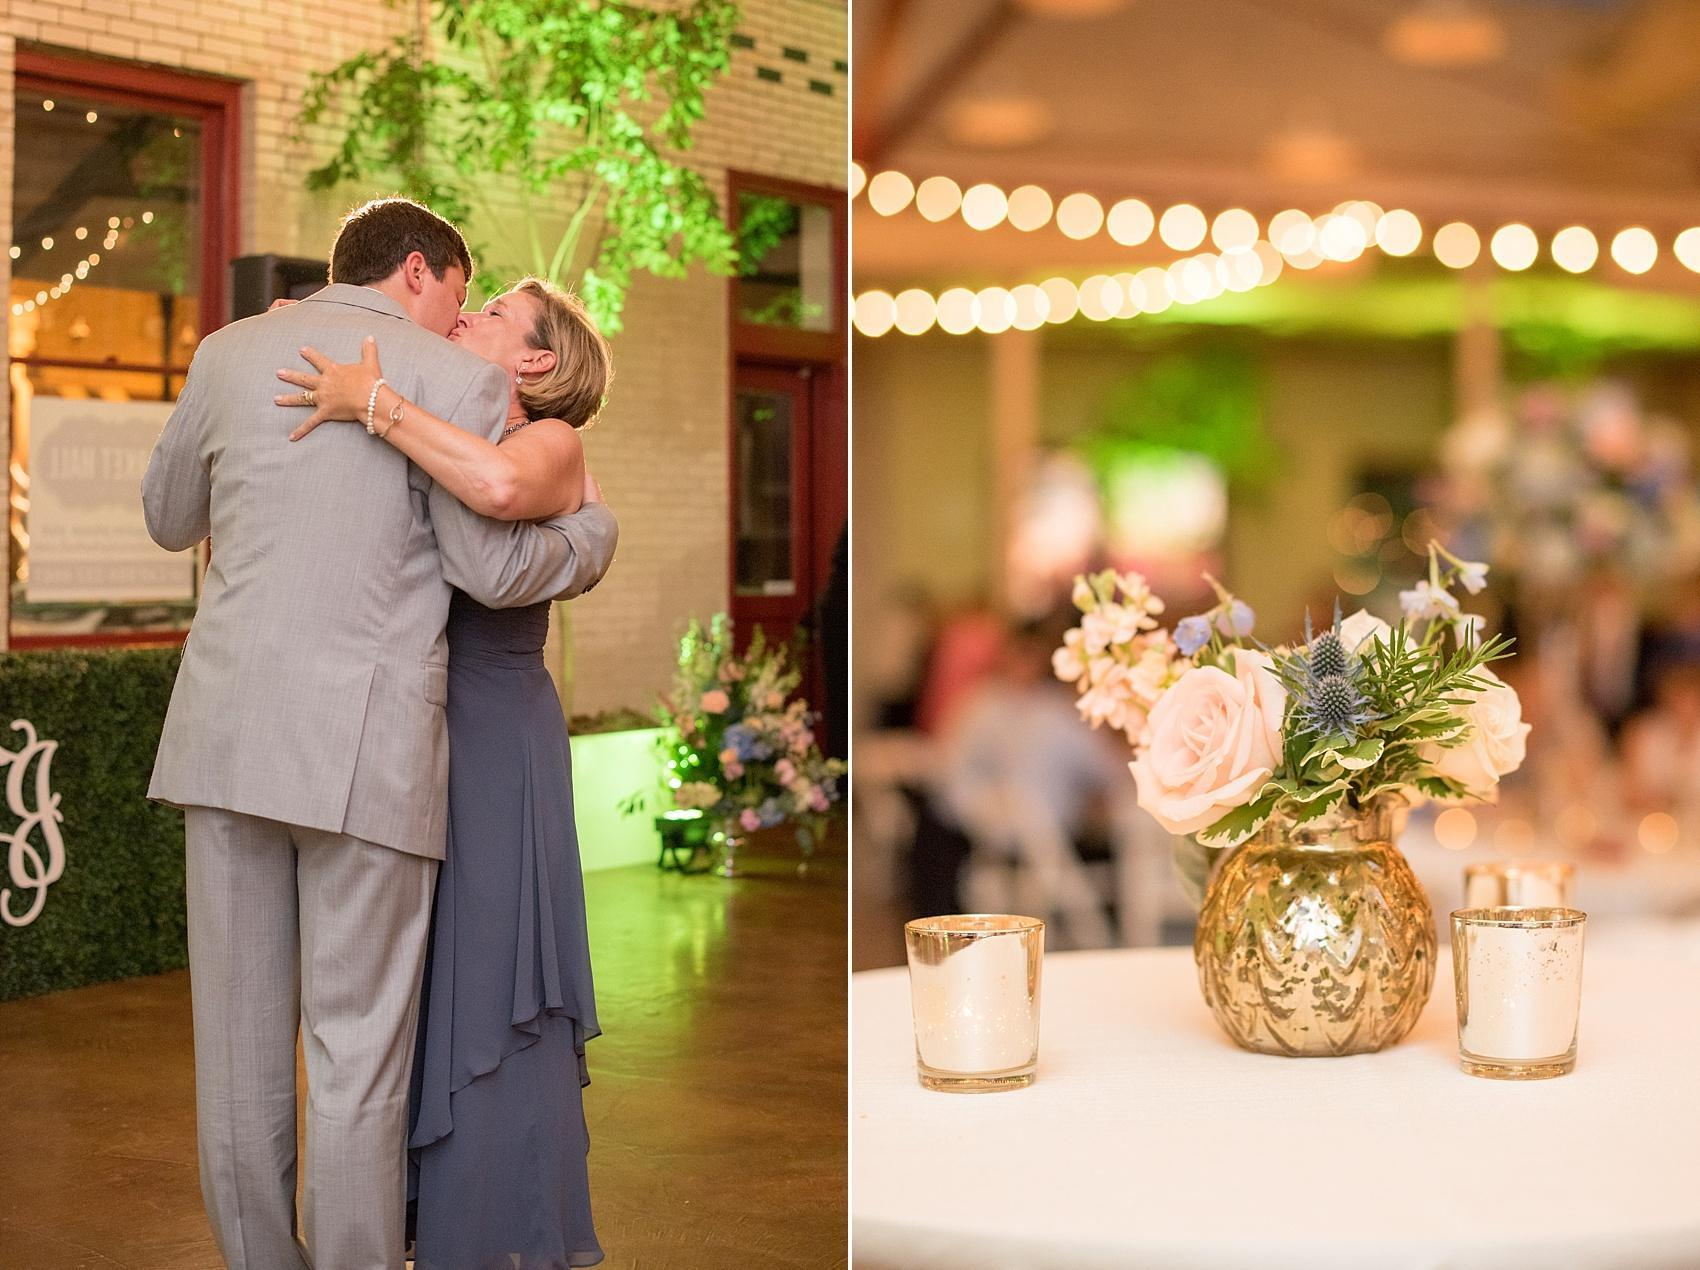 Mikkel Paige Photography photos of a wedding in downtown Raleigh at Market Hall, North Carolina. Special mother son dance and bistro light high top tables and small floral centerpieces in mercury glass.